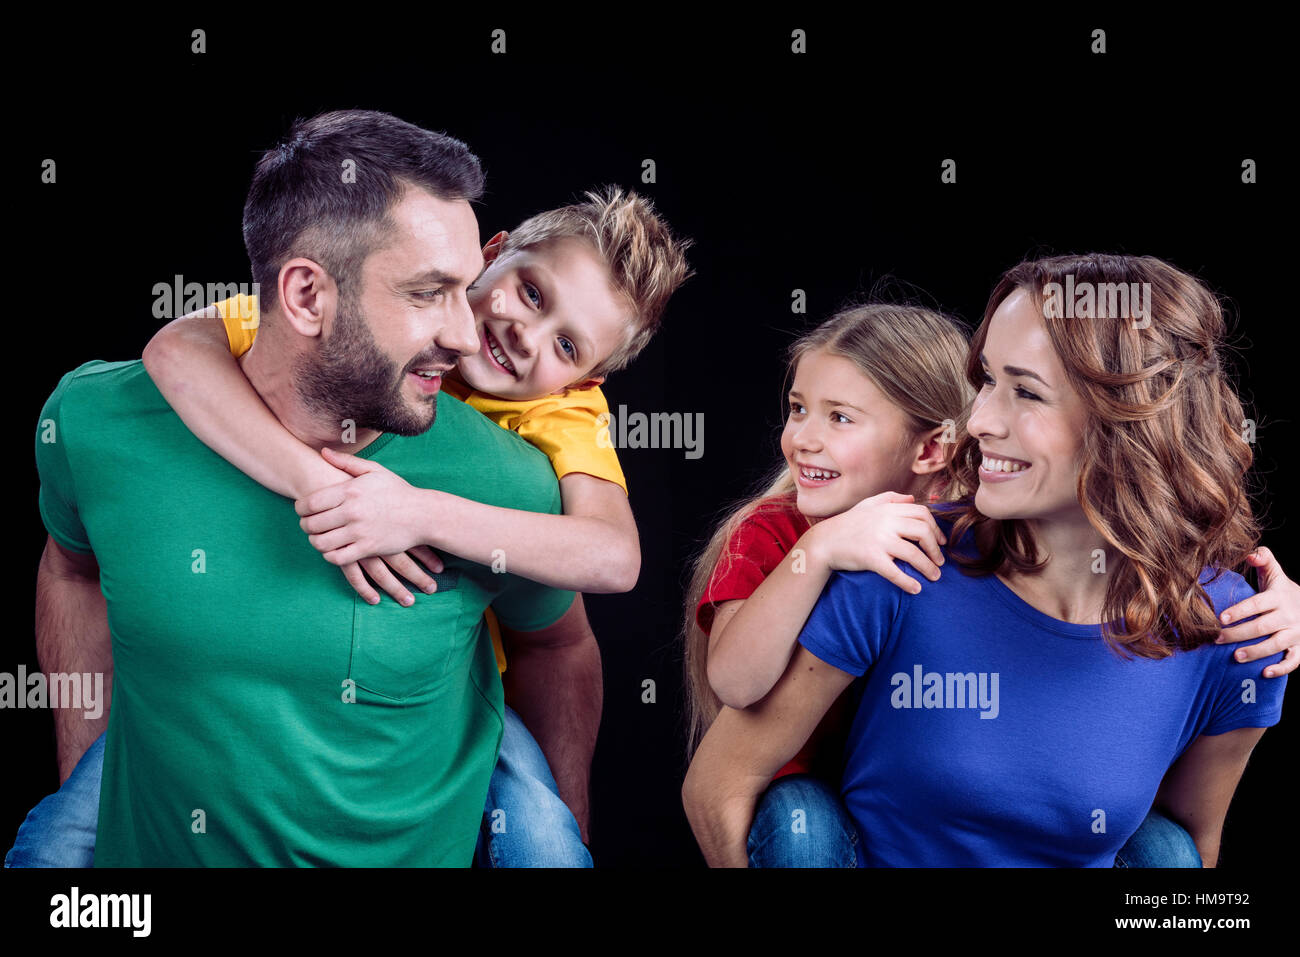 Happy family in colorful t-shirts - Stock Image